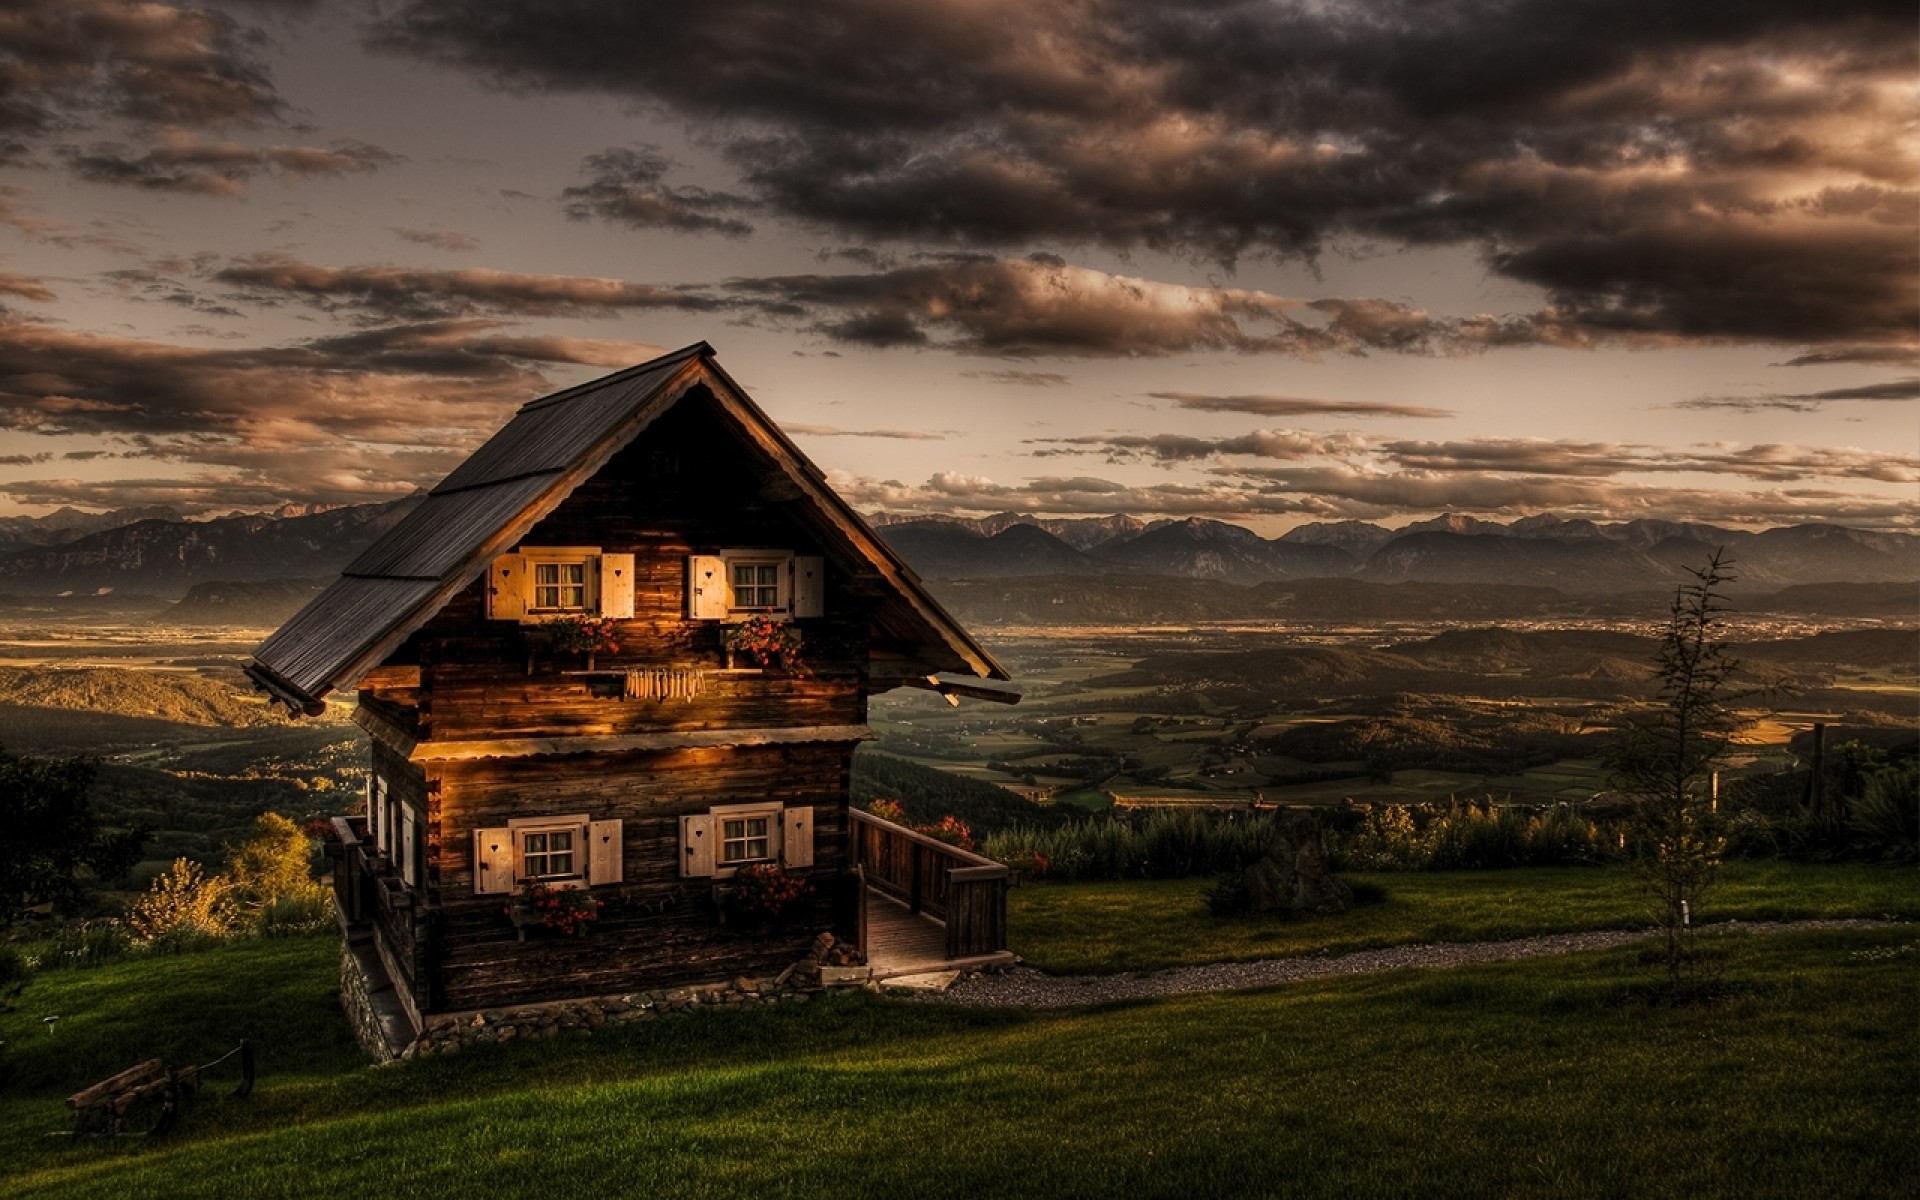 Res: 1920x1200, Bild: Berge-Hütte & Scenic wallpapers and stock photos. «